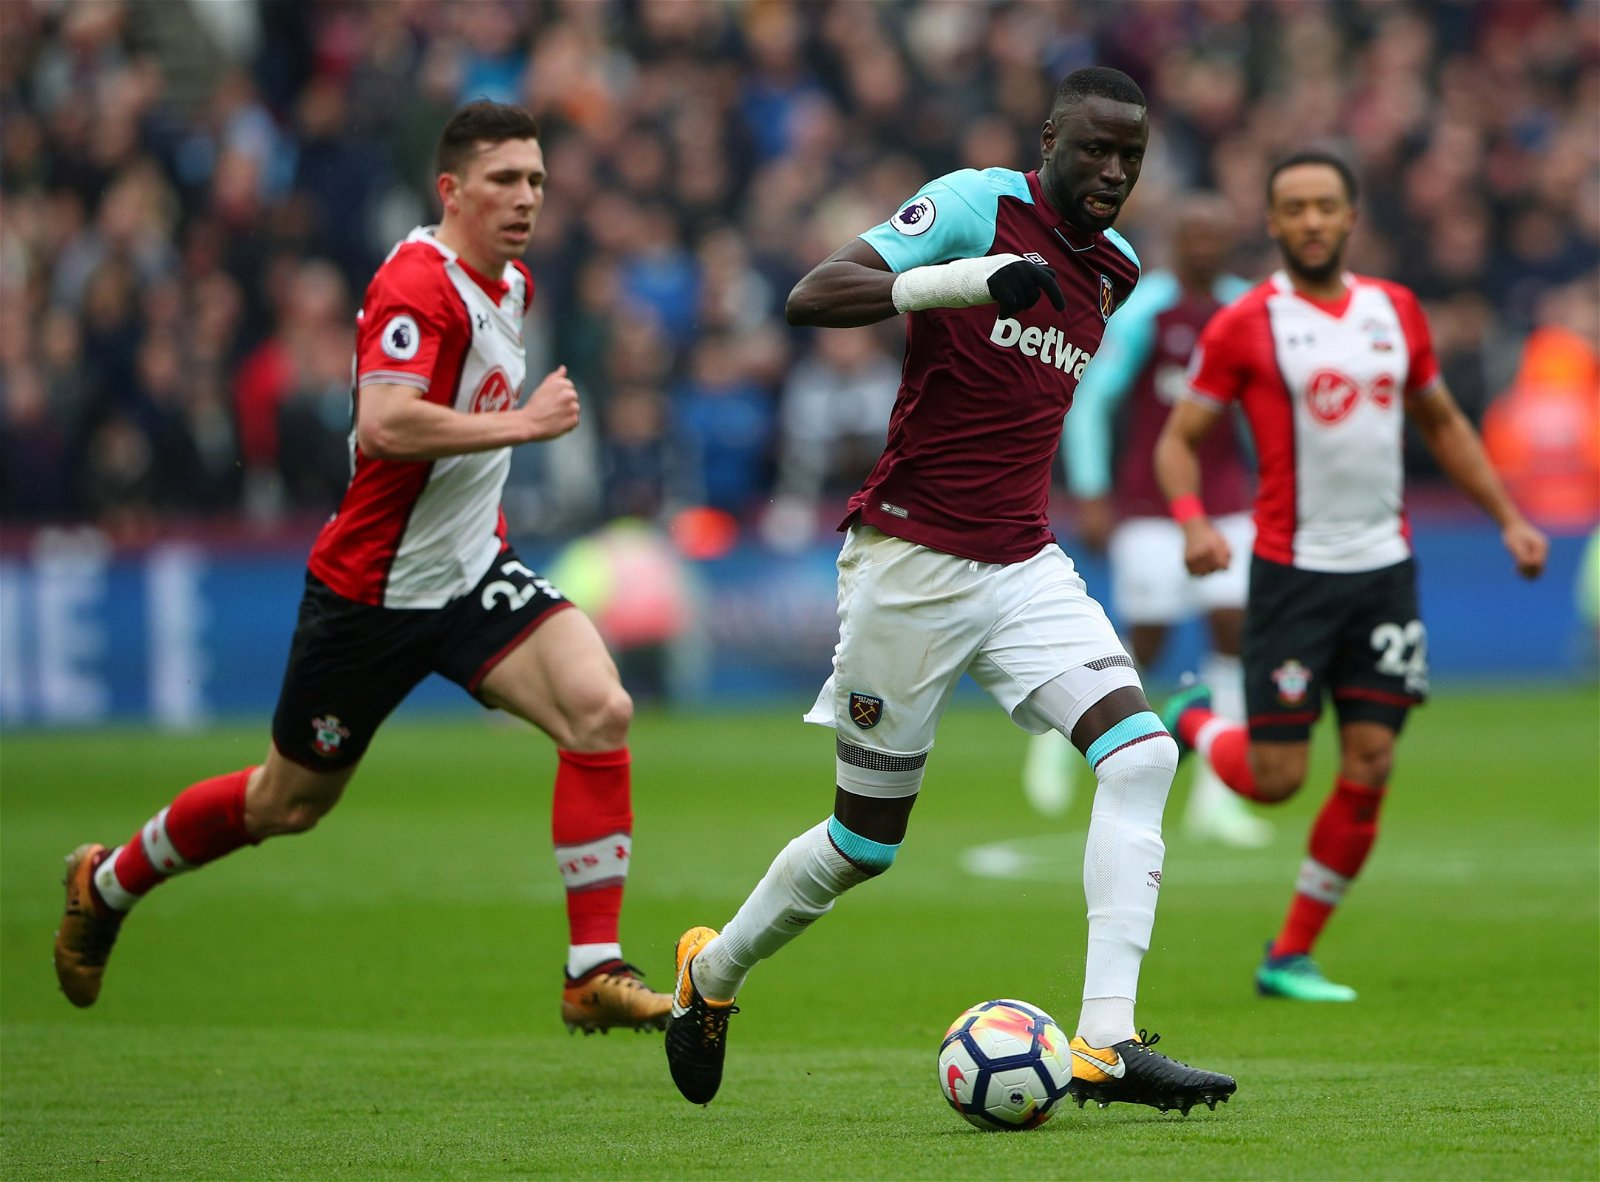 Cheikhou Kouyate in action for West Ham United